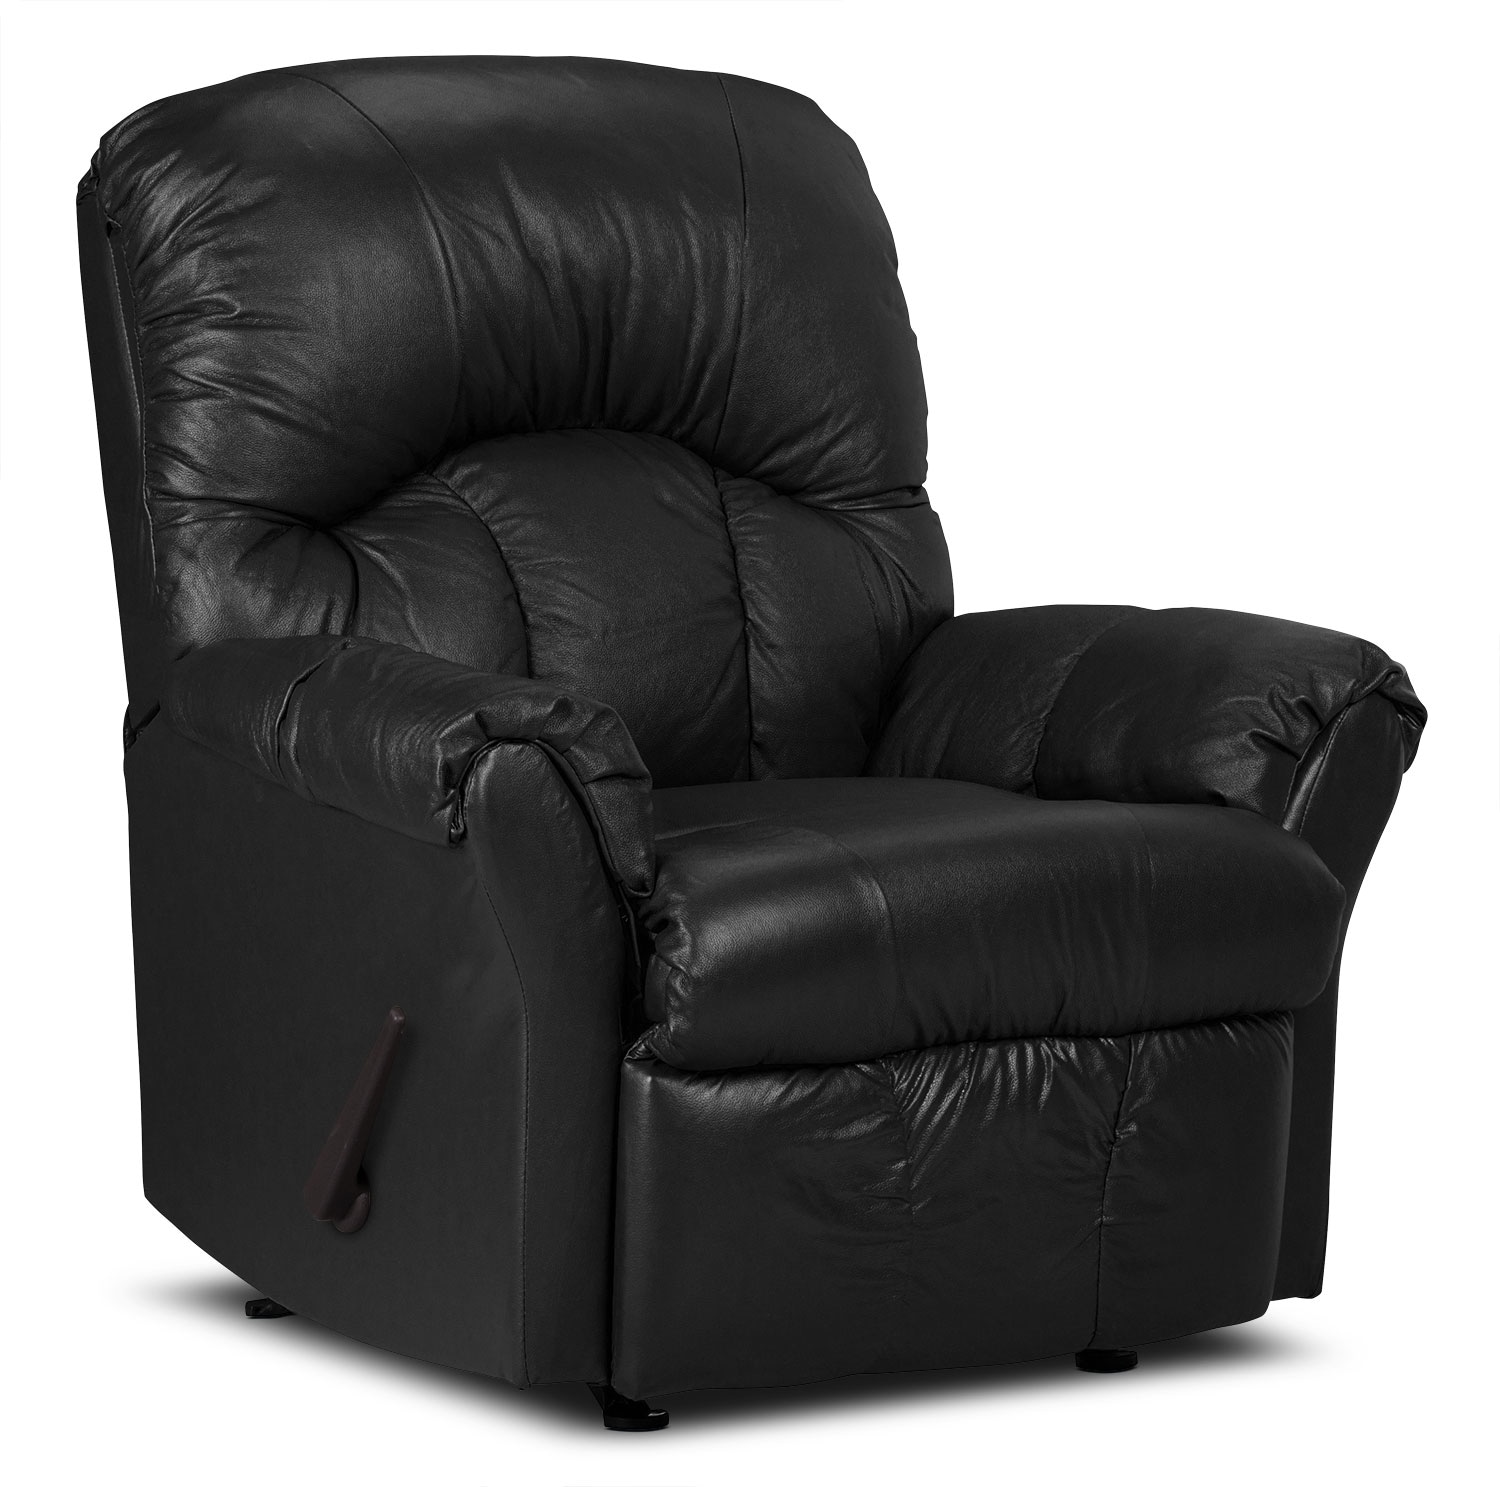 Living Room Furniture - Designed2B Recliner 6734 Genuine Leather Rocker Chair - Black